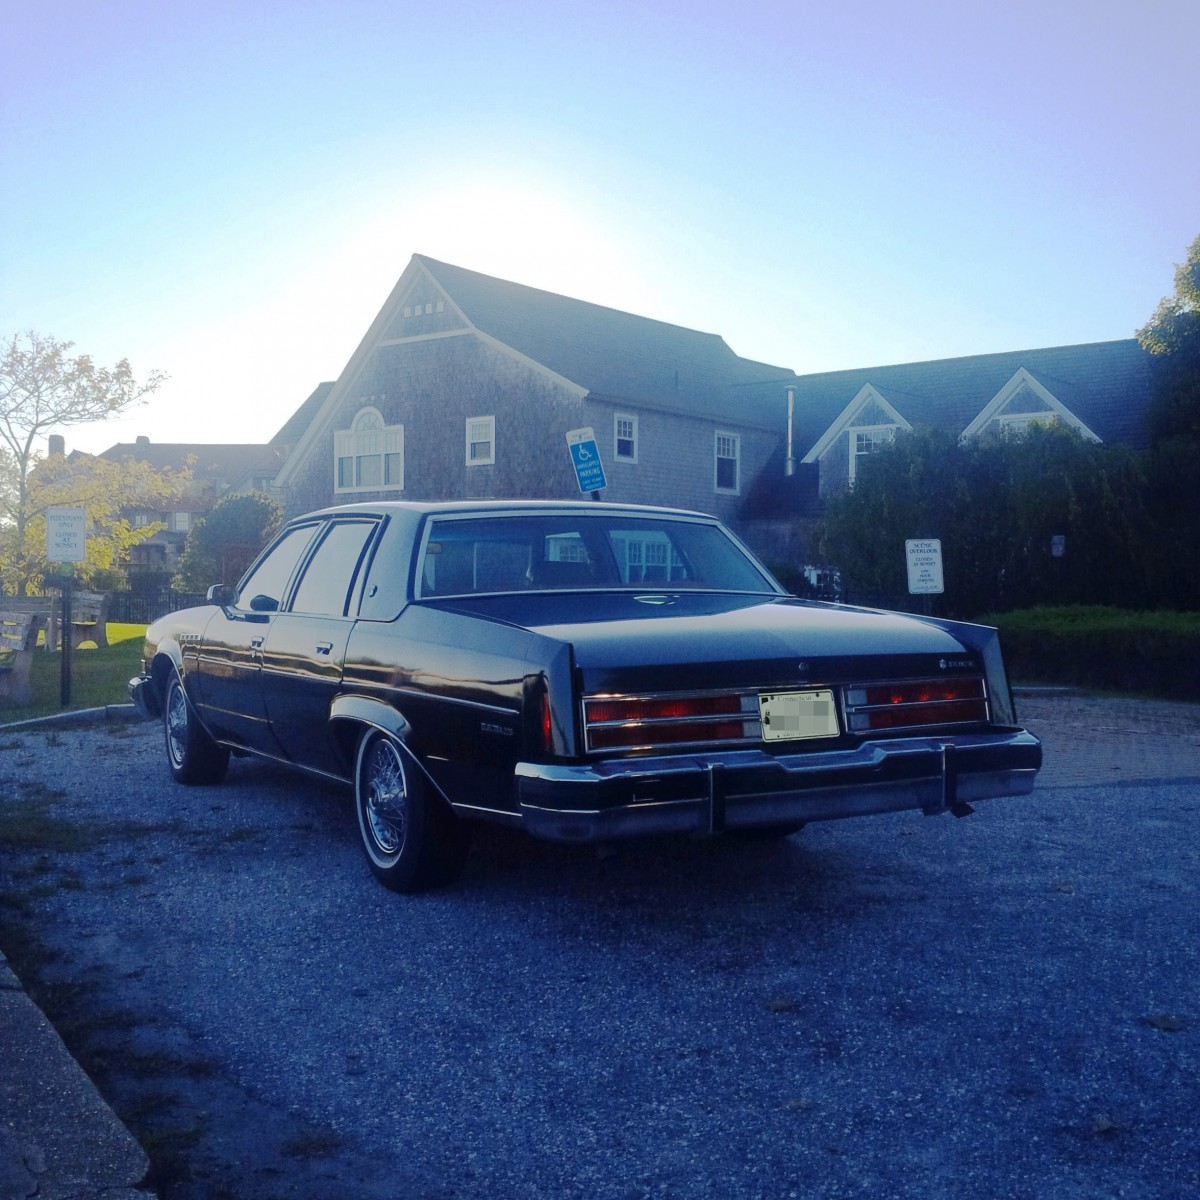 My Curbside Classic: 1977 Buick Electra 225 – The Green Goddess Of Linden